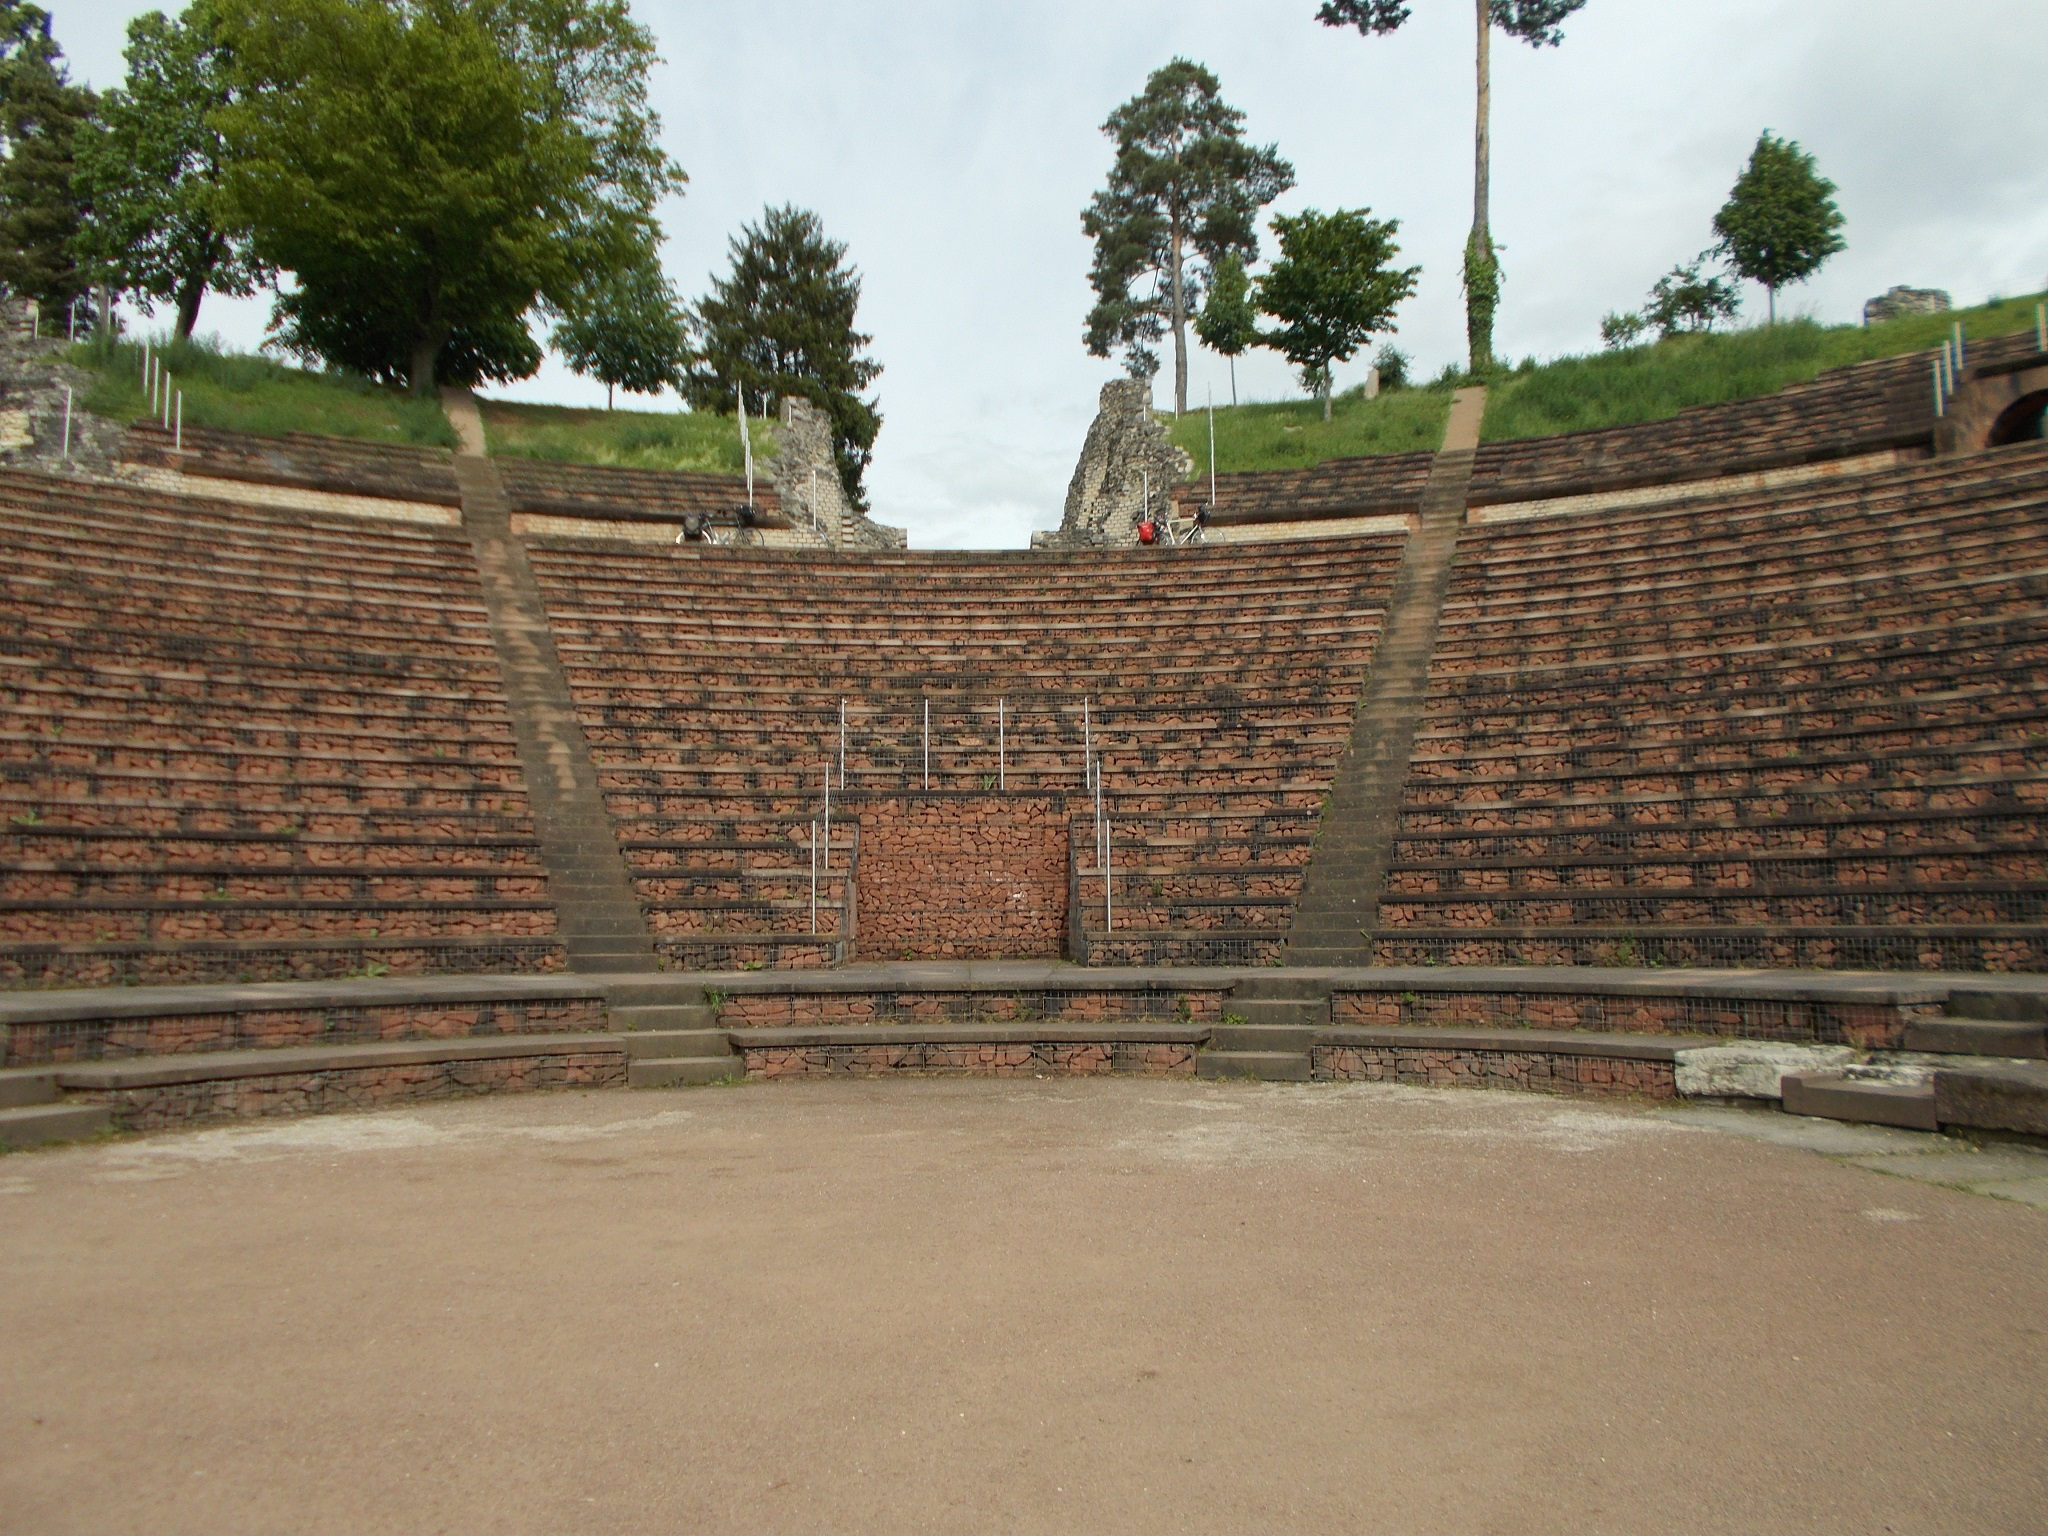 A brickwork Roman amphitheatre photographed from inside the amphitheatre floor.